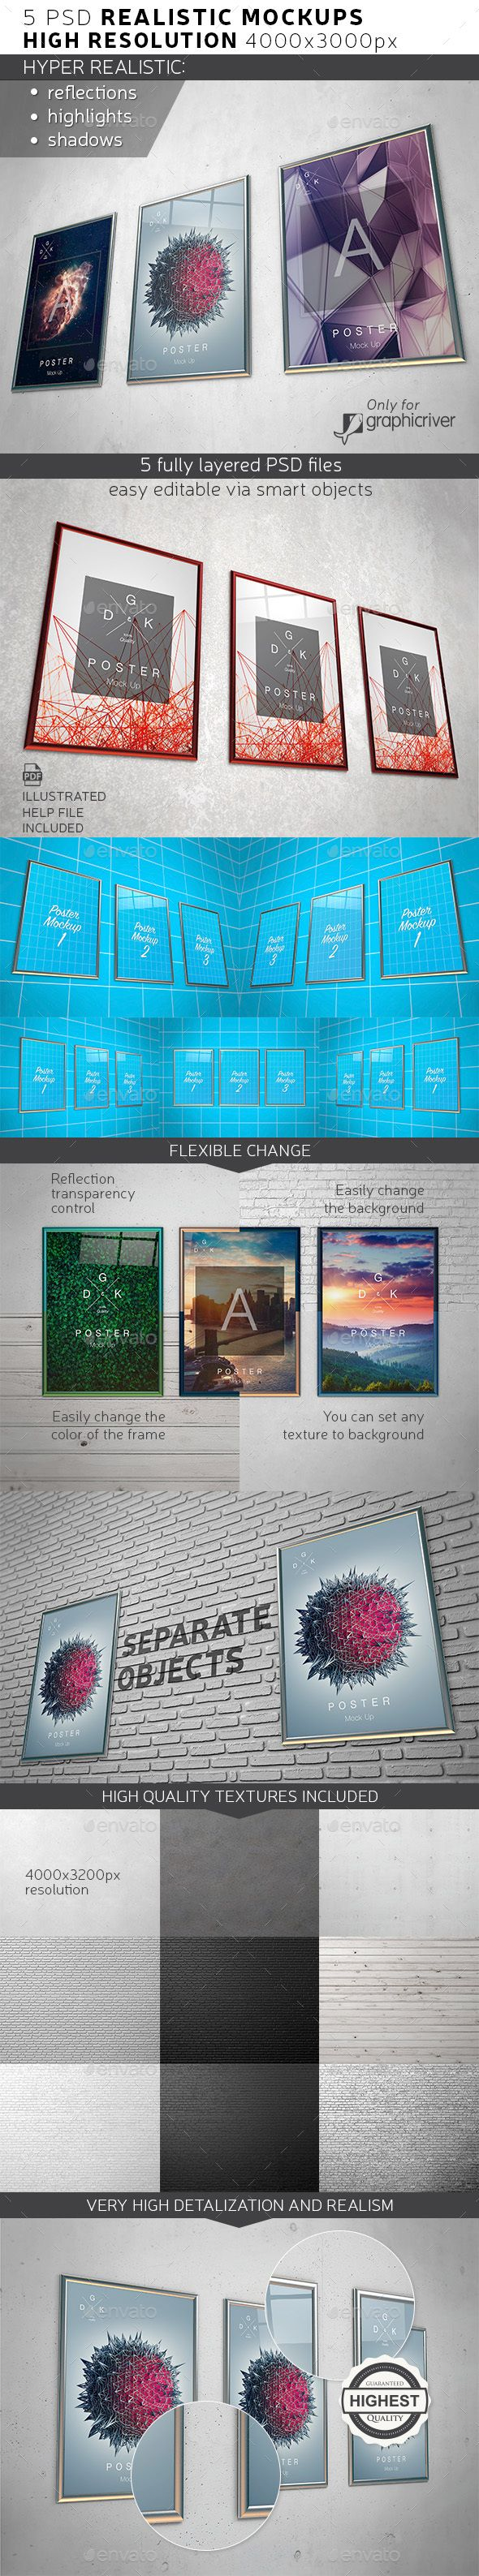 Posters / Print Mock-up by Dkgoodart If you want to present your photography or design layout in a beautiful and aesthetic form, this mockup will be very helpful to yo